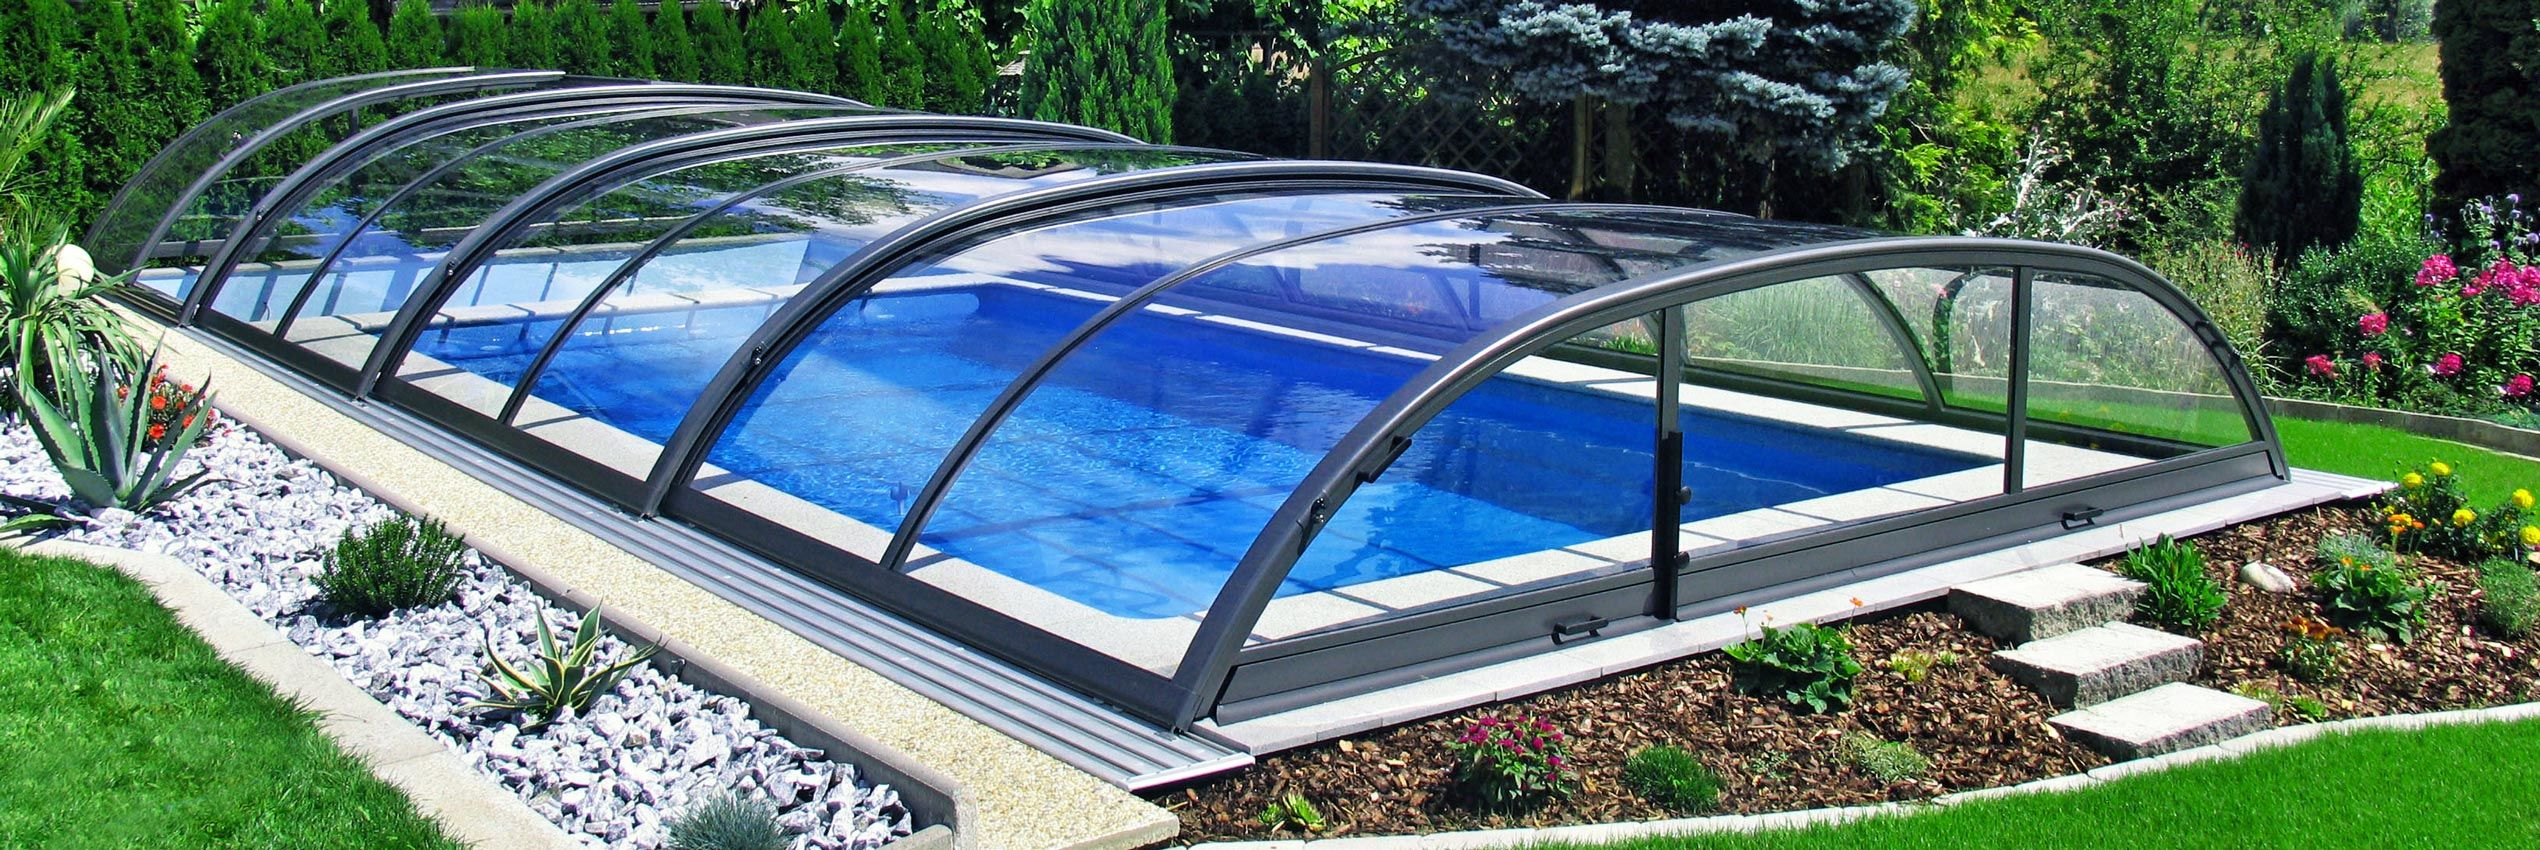 Fully Closed Retractable Pool Enclosure Elegant Fully Closed Retractable  Swimming ...